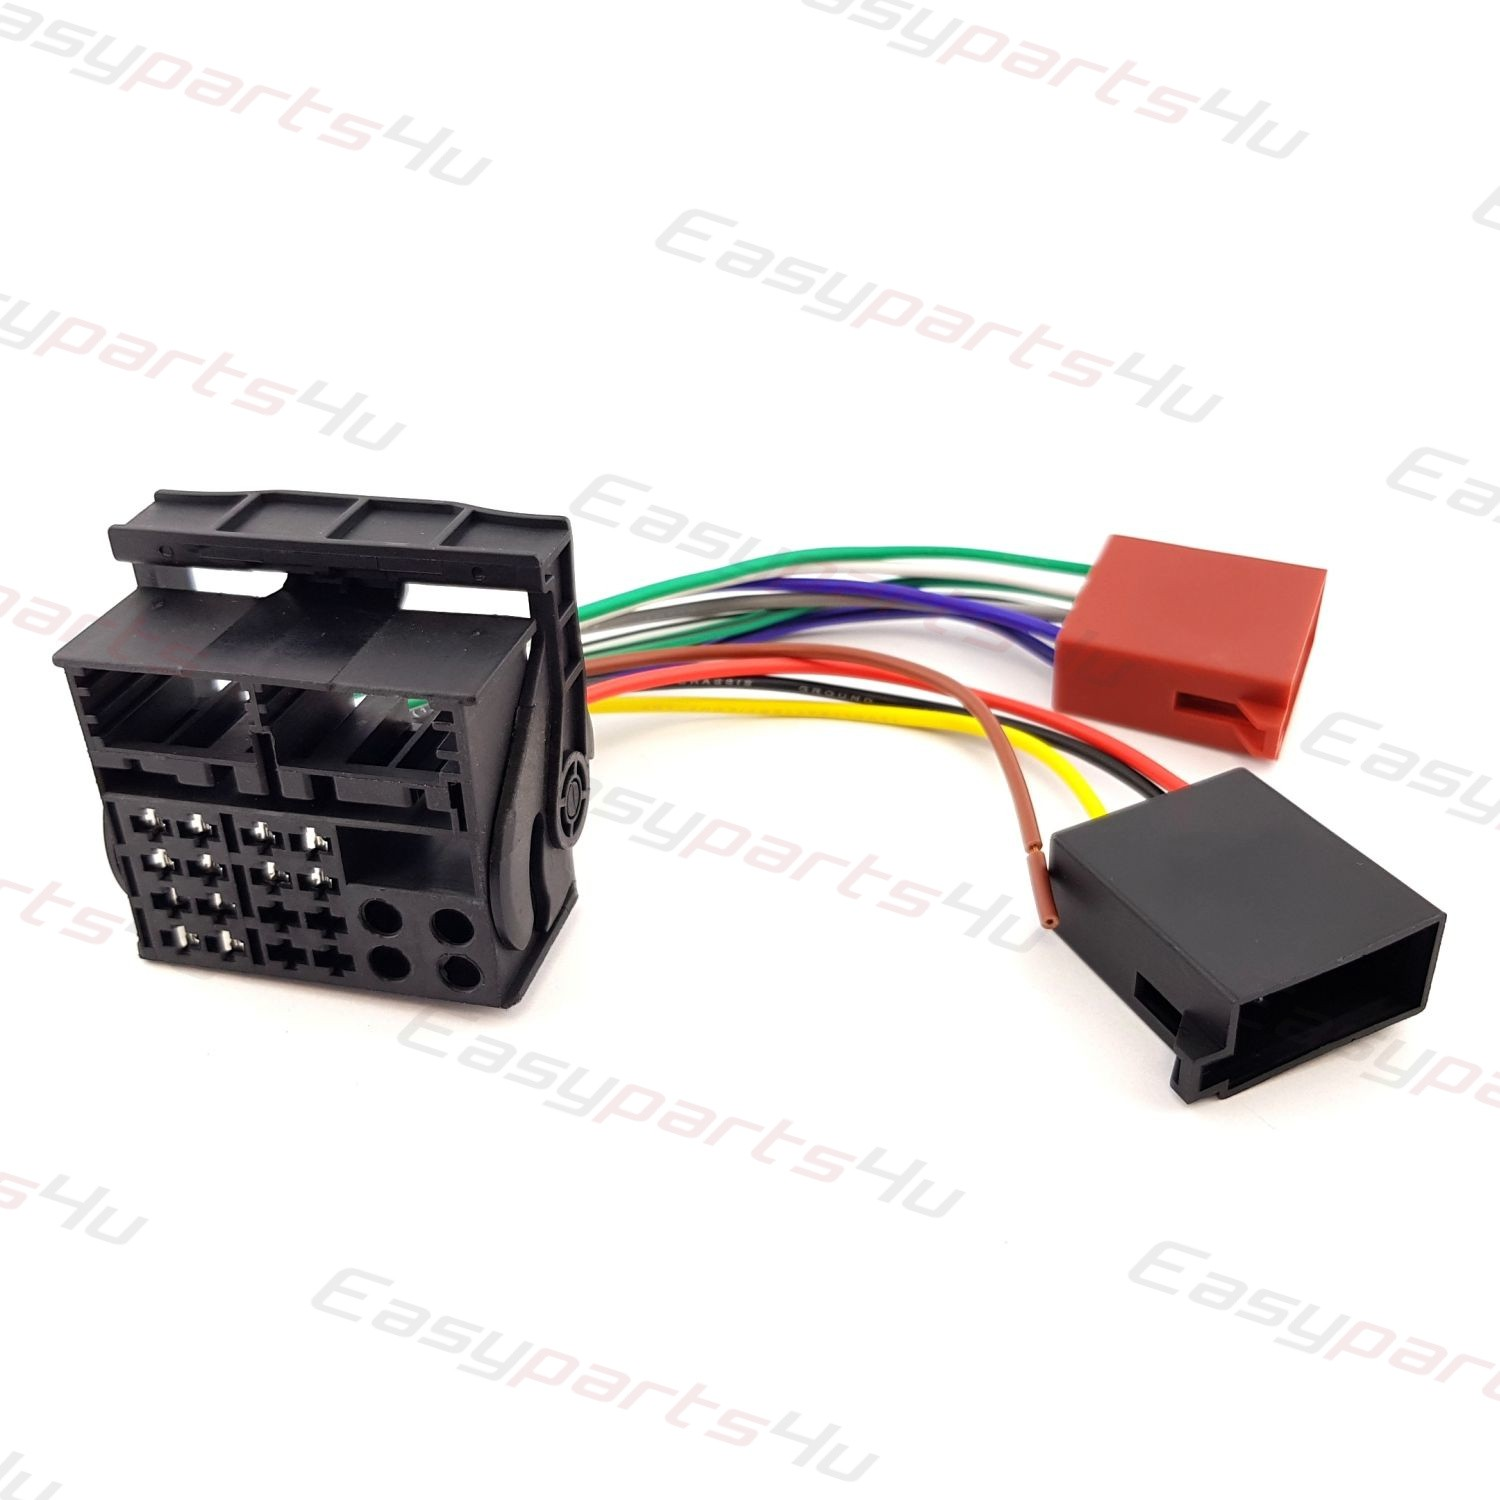 Vw Iso Adapter For Oem Radio Rcd 200 300 310 510 Wiring Harness Lead Headlight More Views